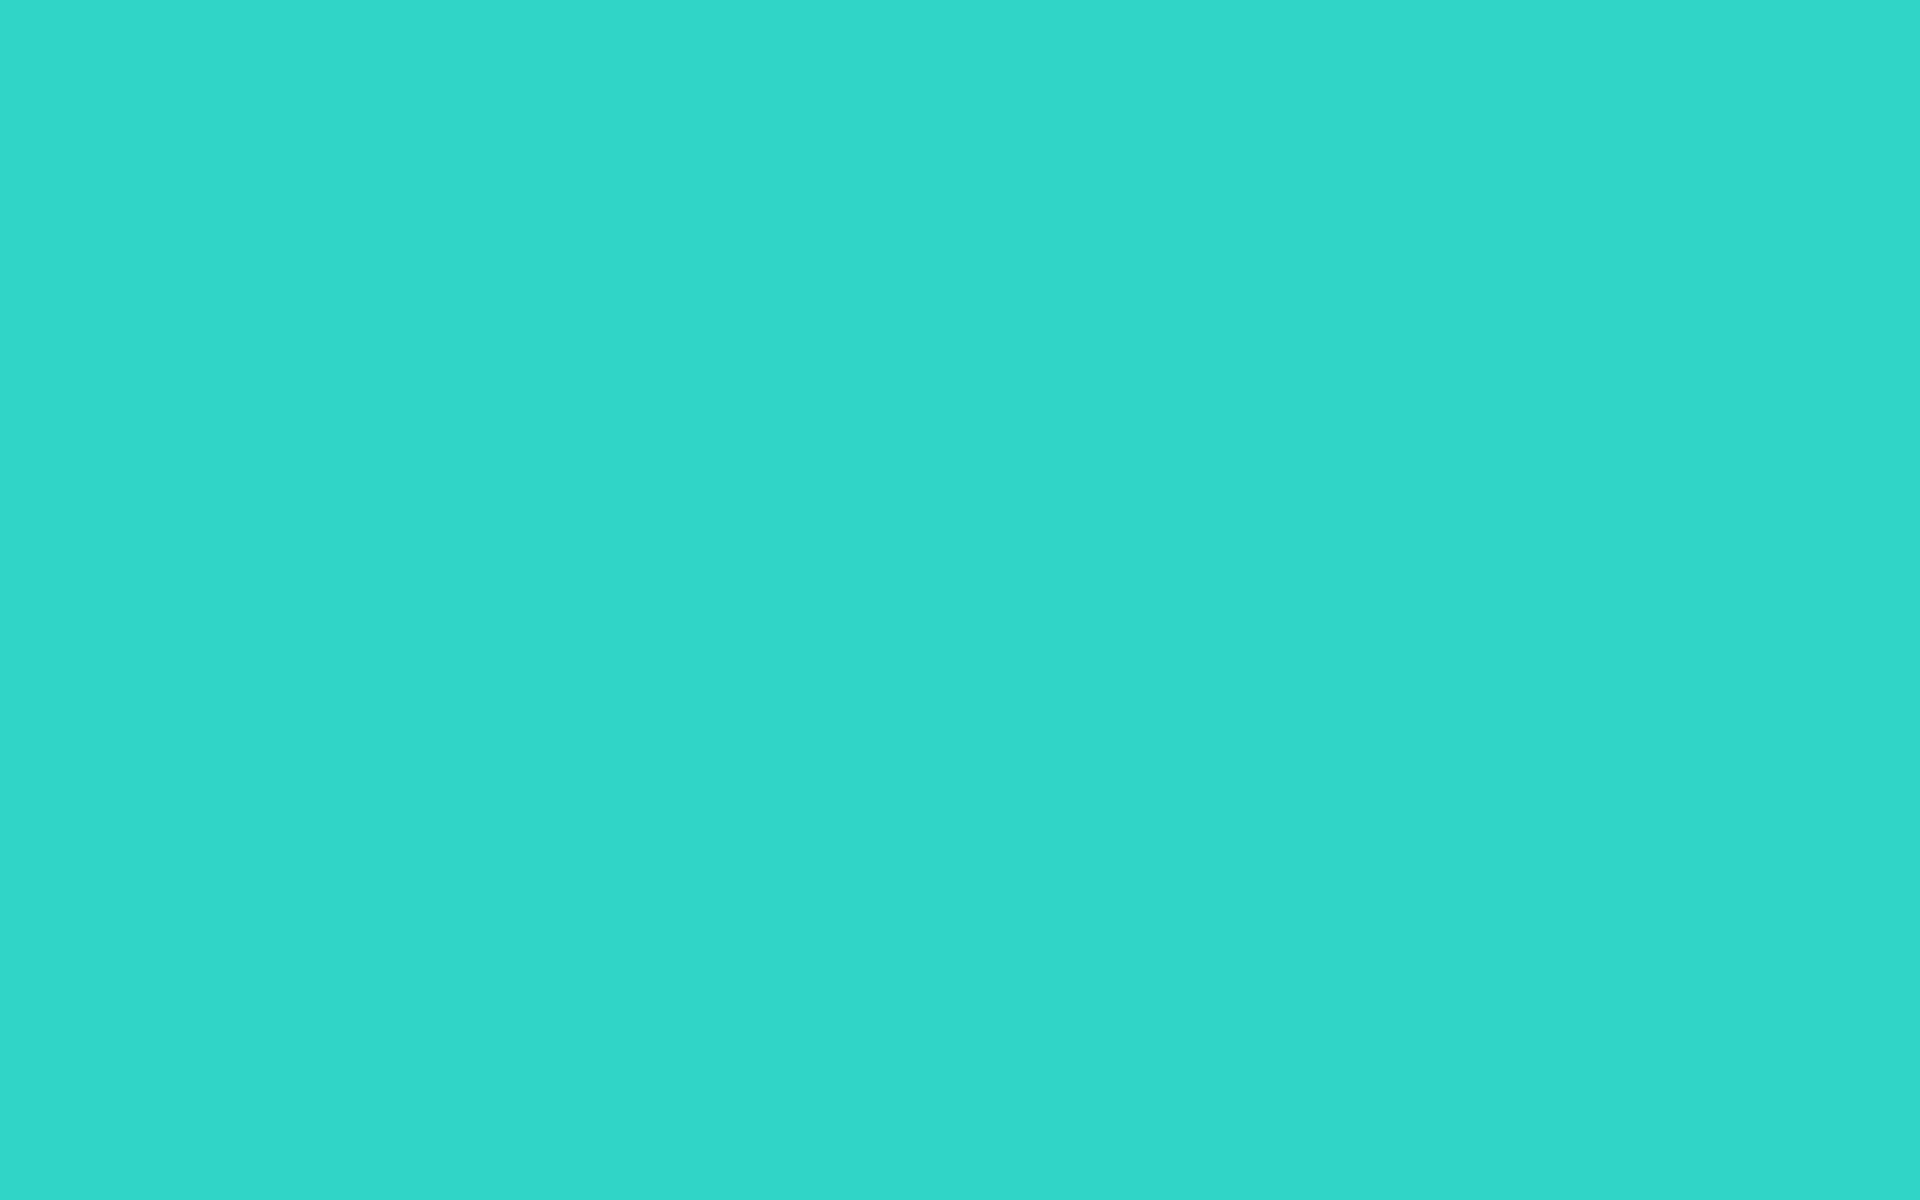 19 1920x1200 Resolution Turquoise Solid Color Background View And 1920x1200